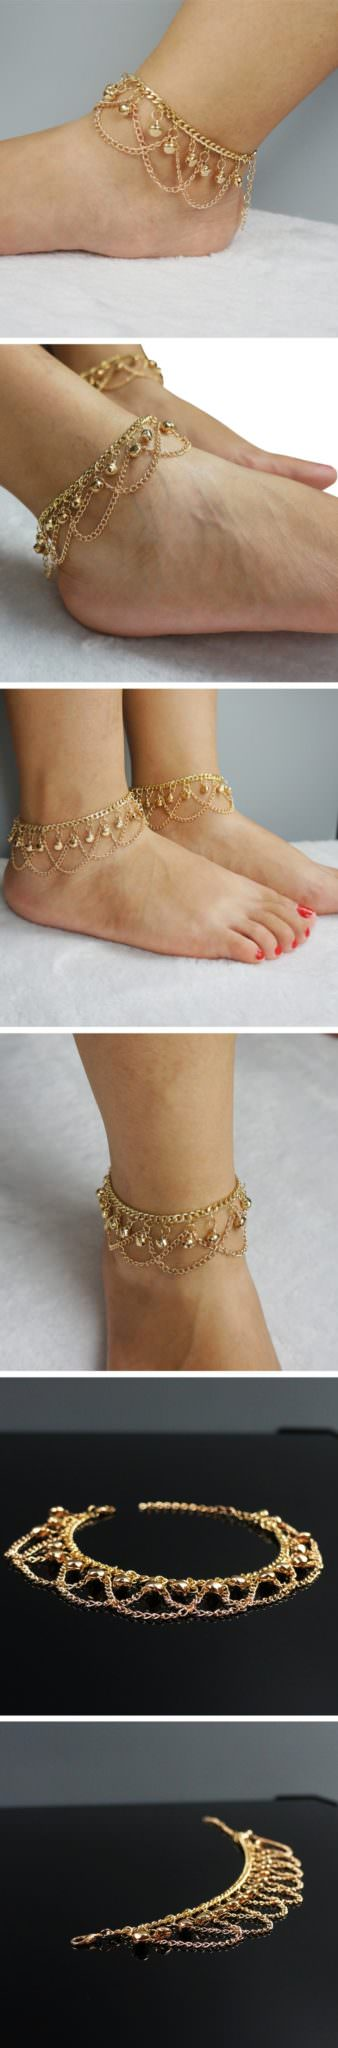 7063-c3f66a57a63eb9cc5afe39fb3229f5e9 Gold Plated Drape Chain Anklet Jewelry With Bells